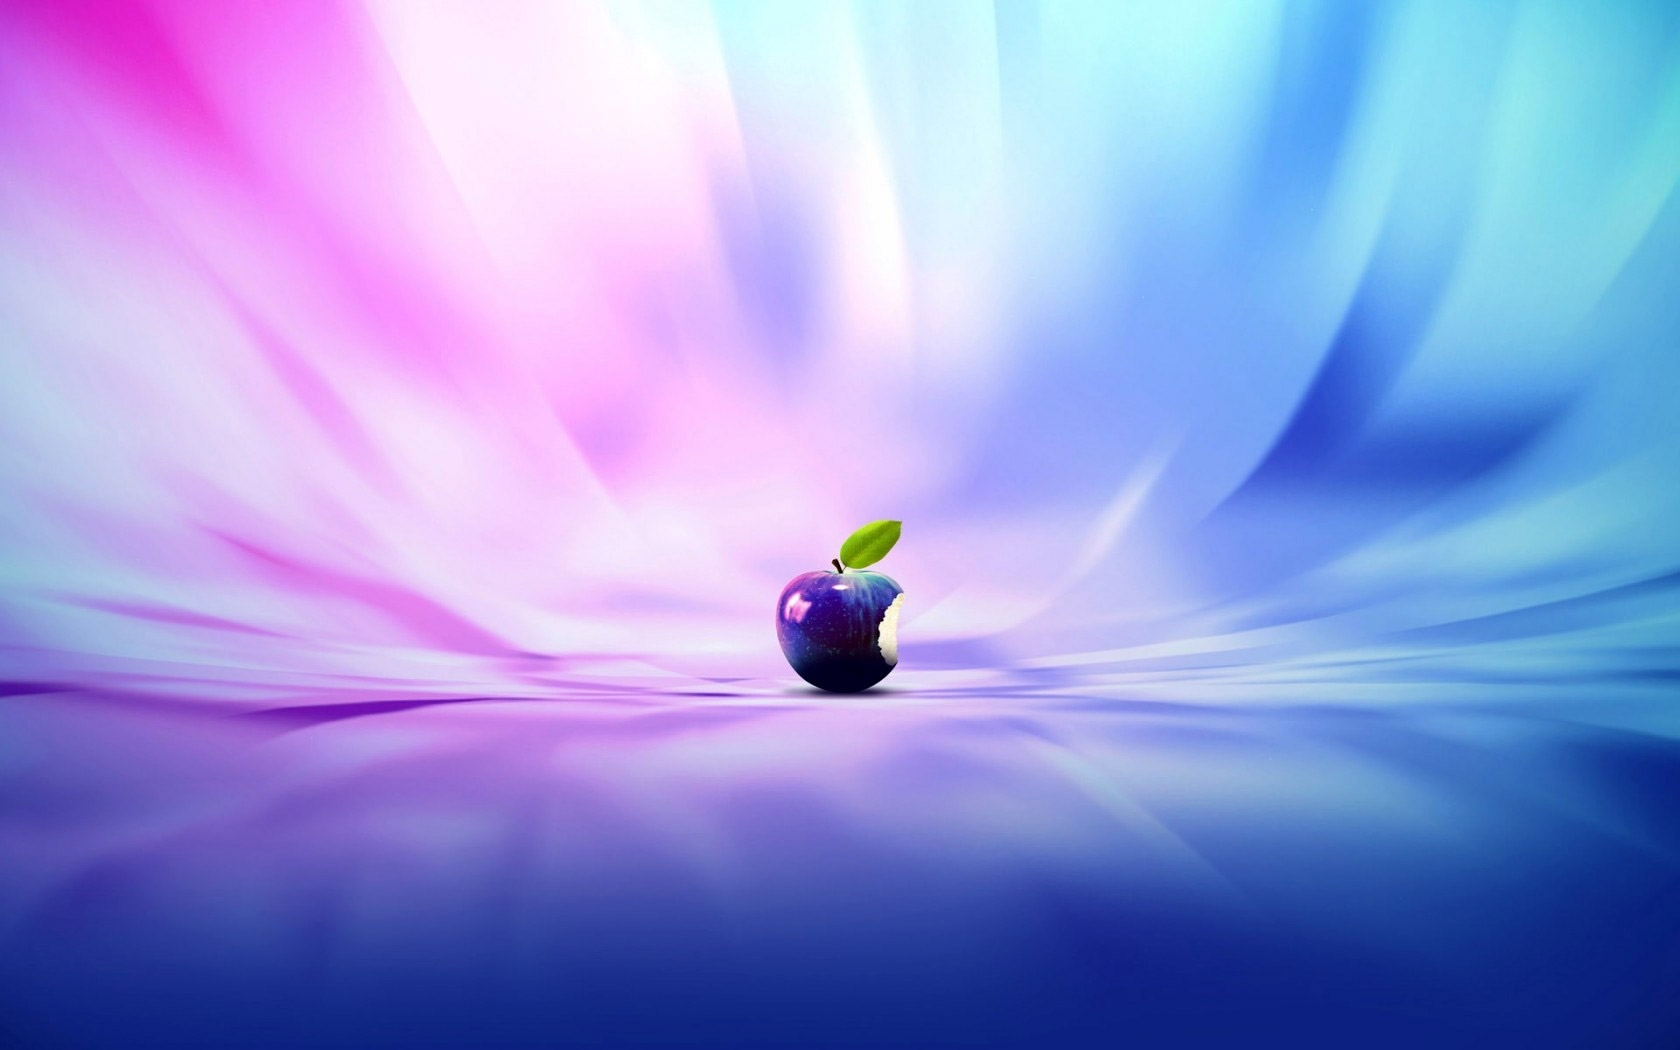 48164 download wallpaper Brands, Background, Apple, Apples screensavers and pictures for free